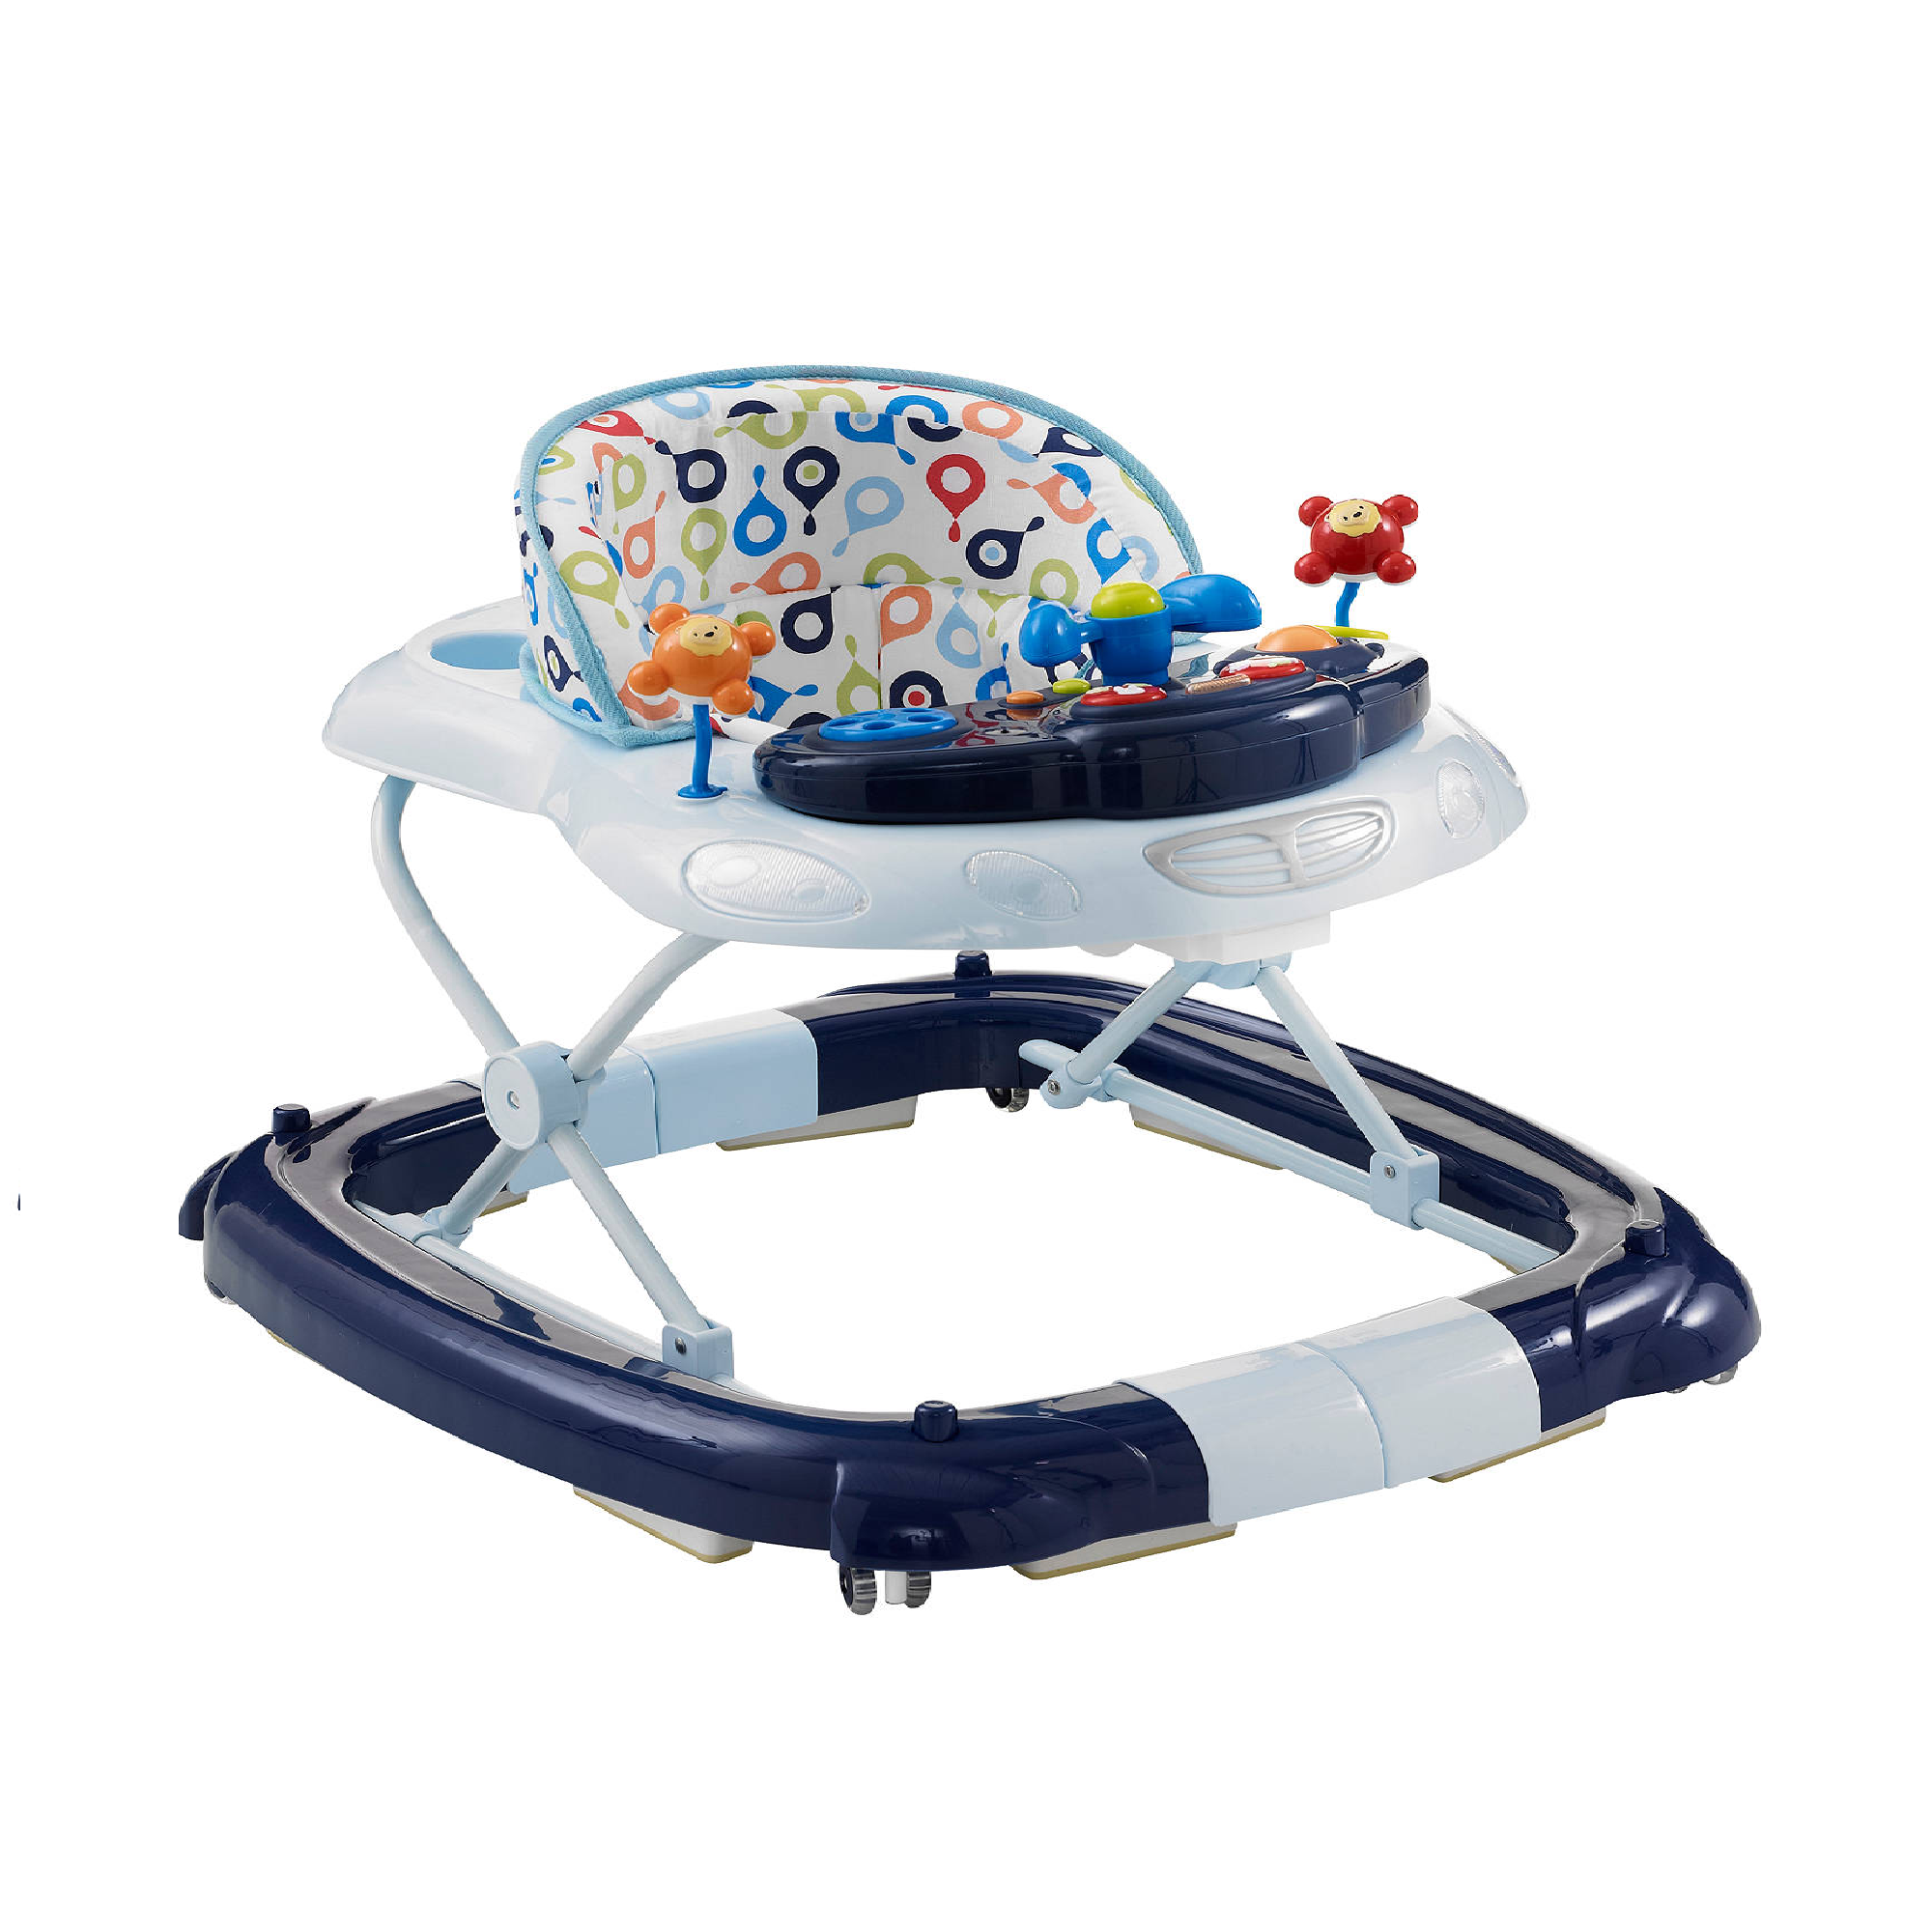 MyChild Car Baby Walker Rocker With Musical Sounds Play Tray